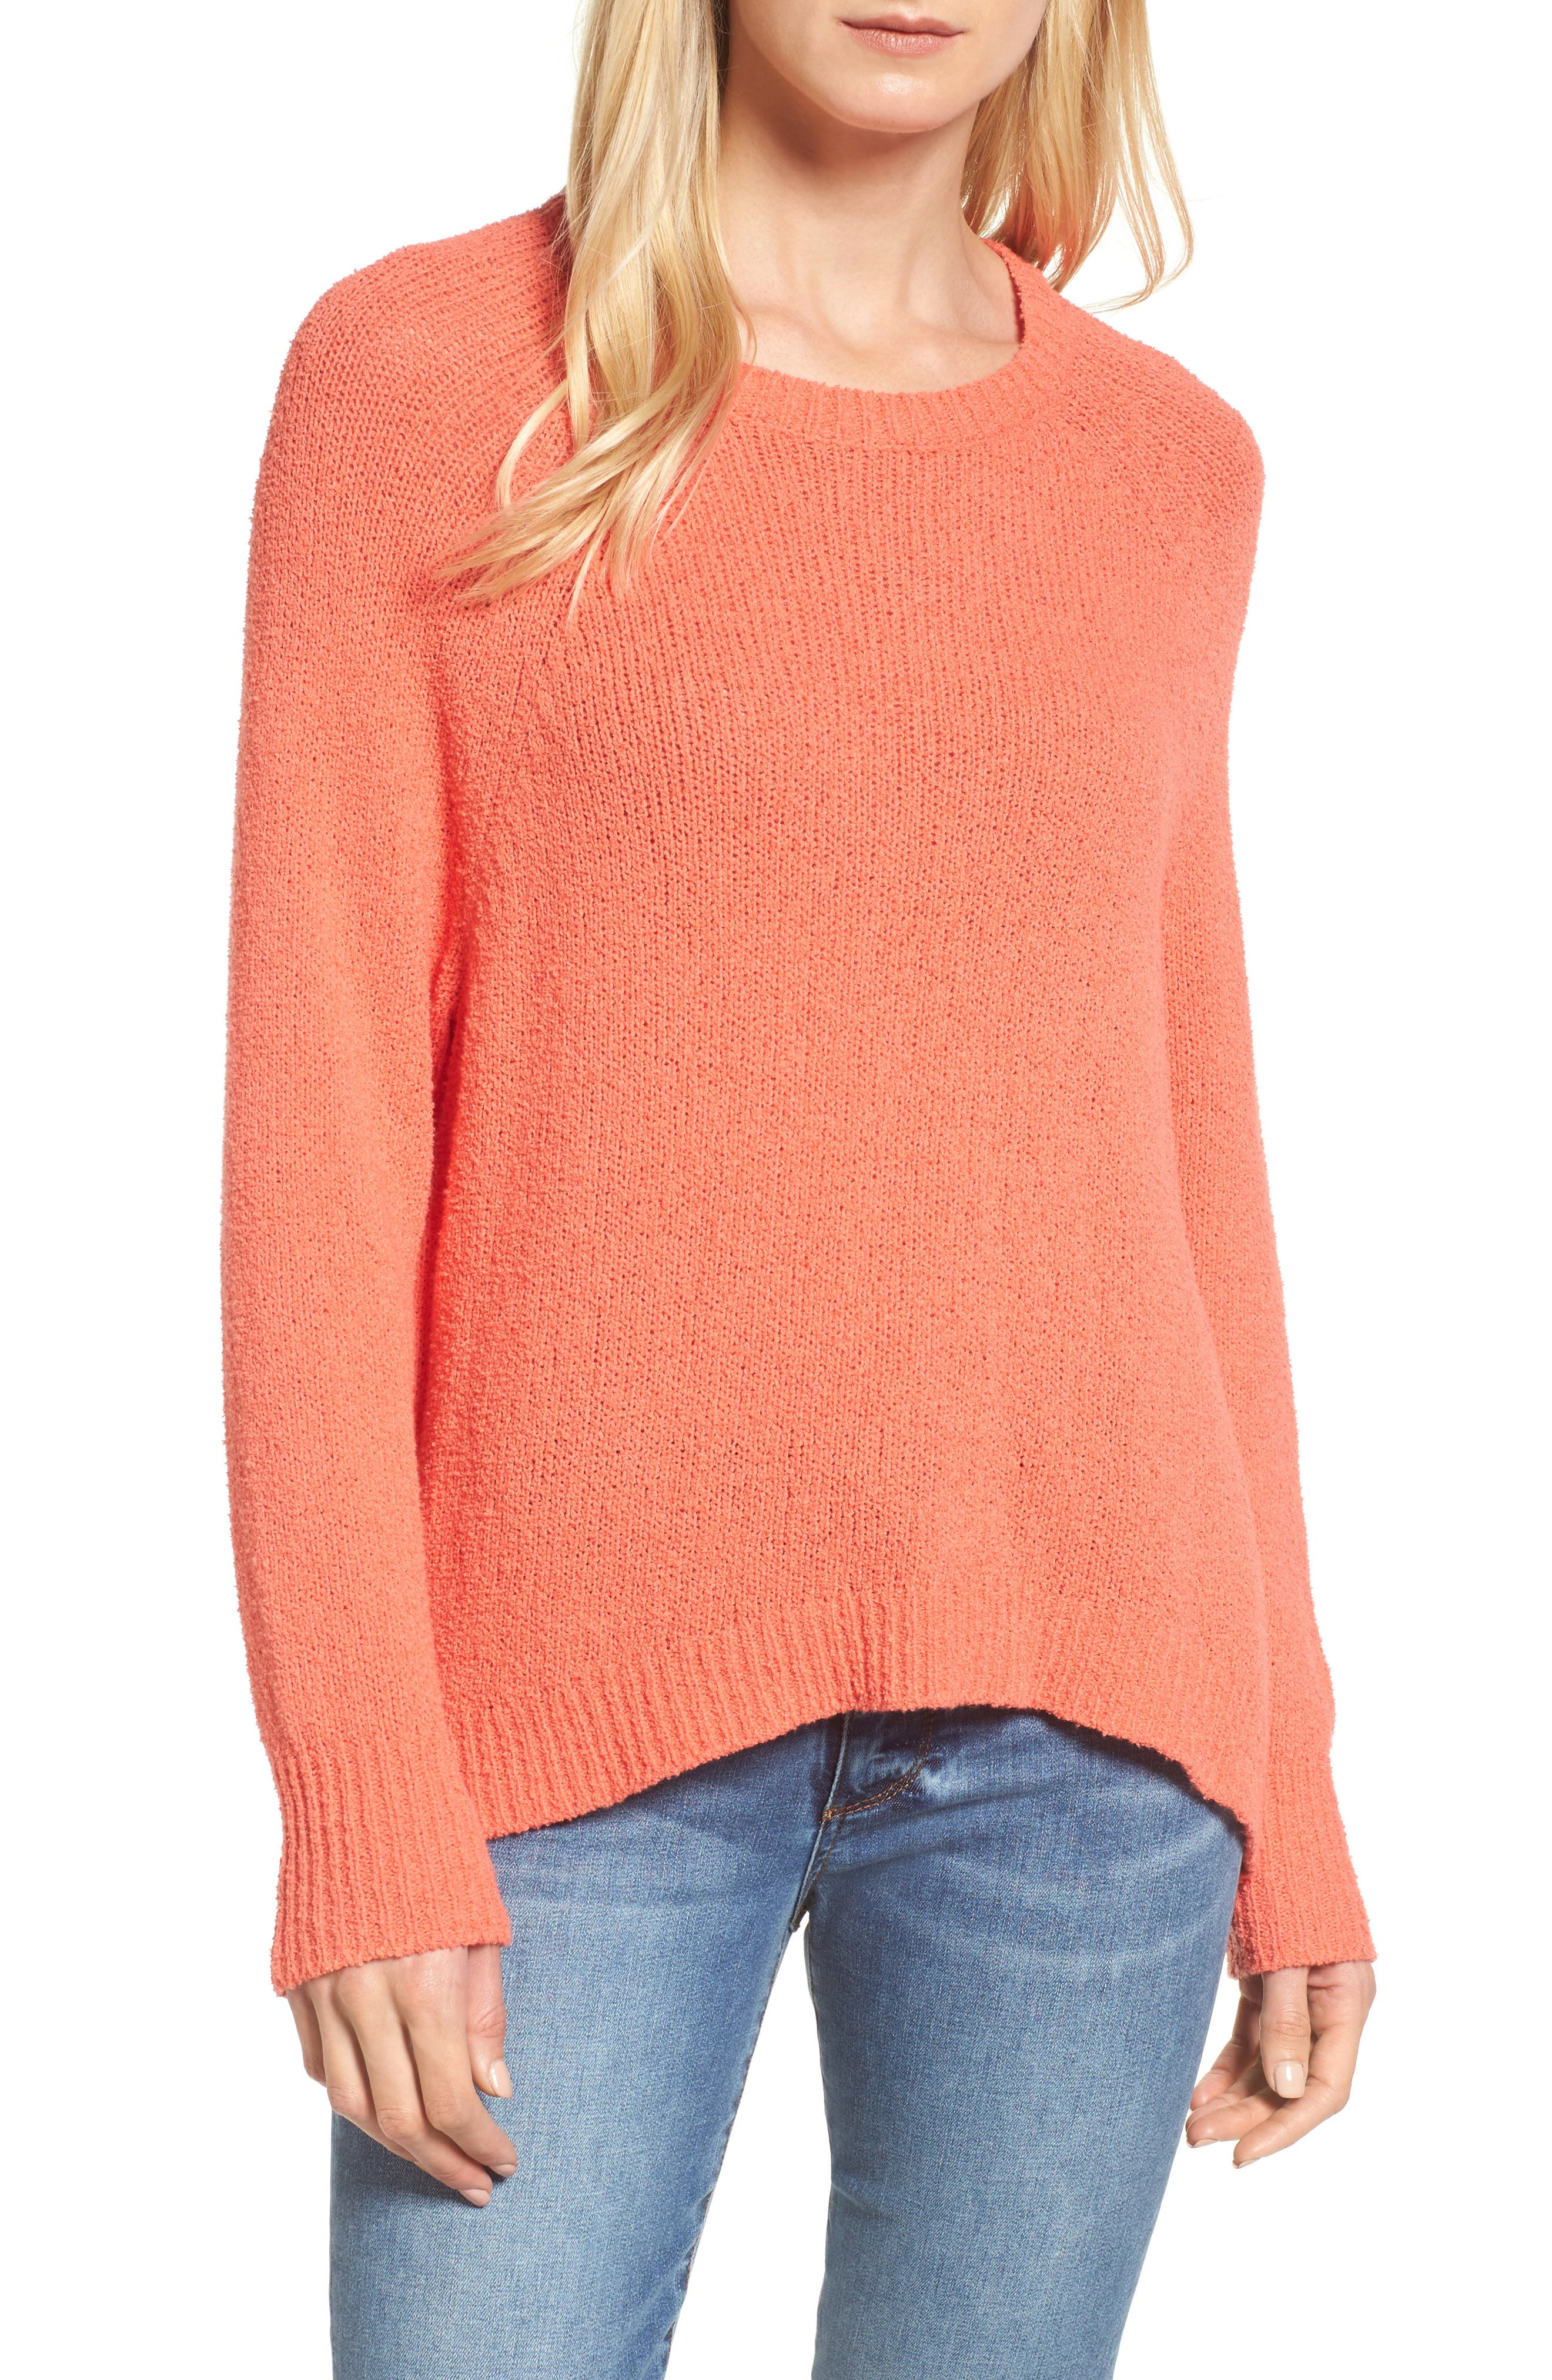 Women's Pink Cotton Blend Sweaters | Nordstrom